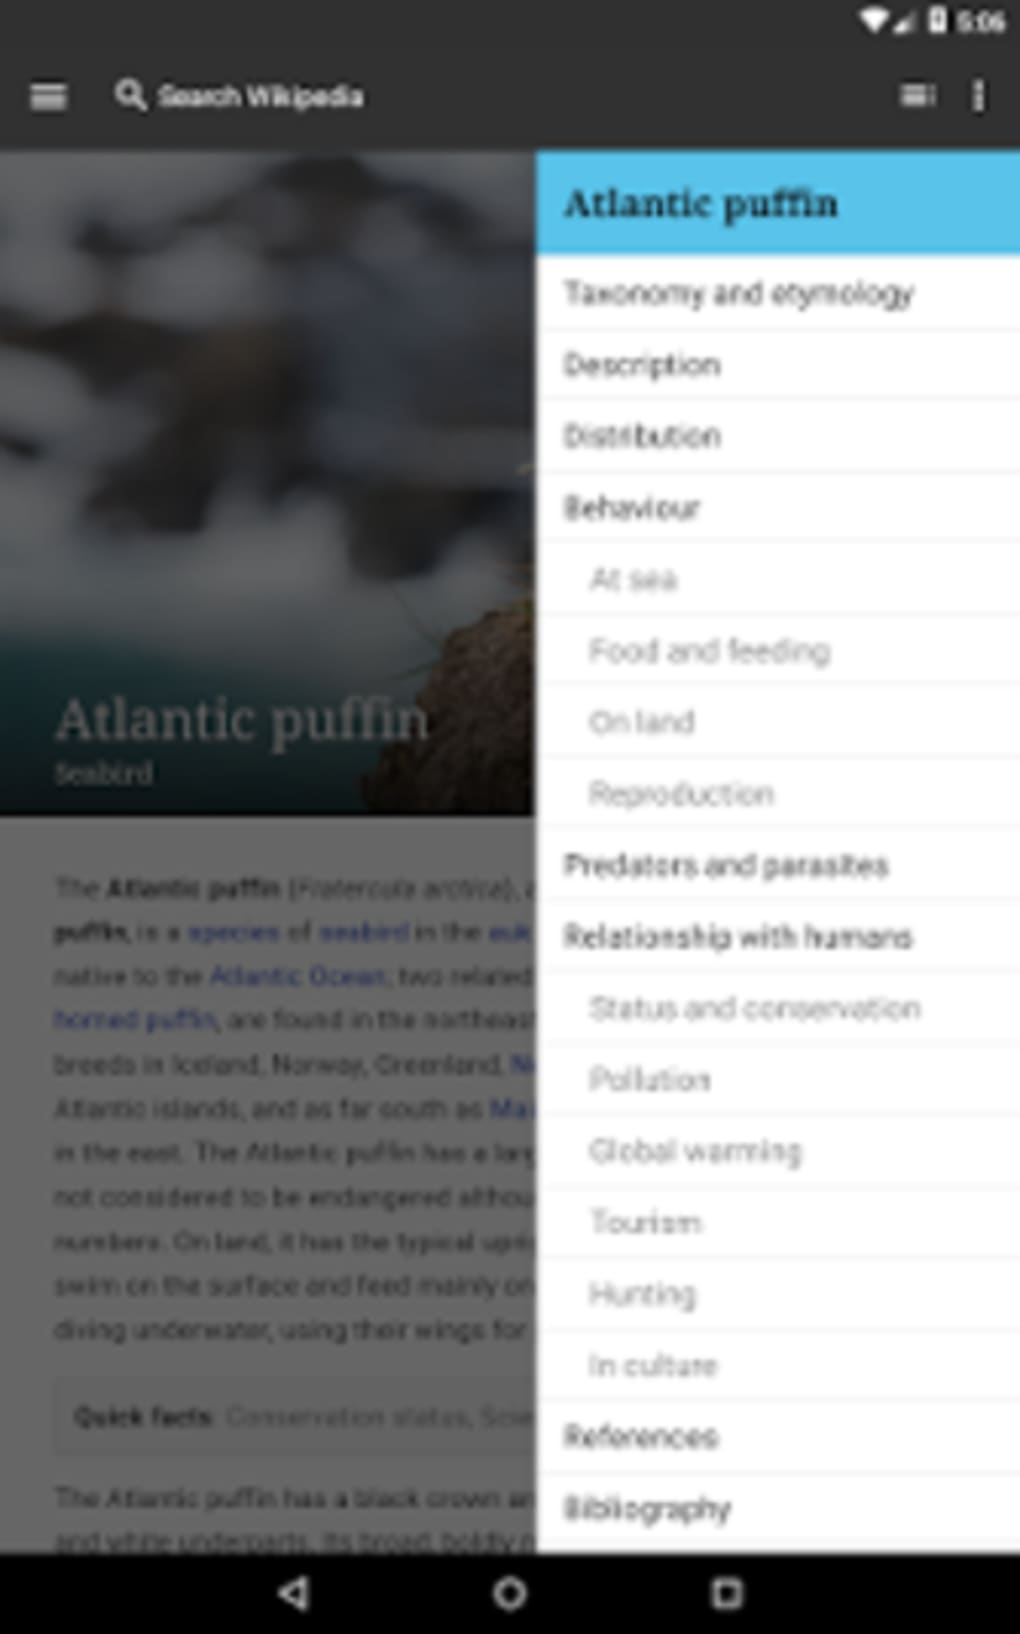 Wikipedia for Android - Download